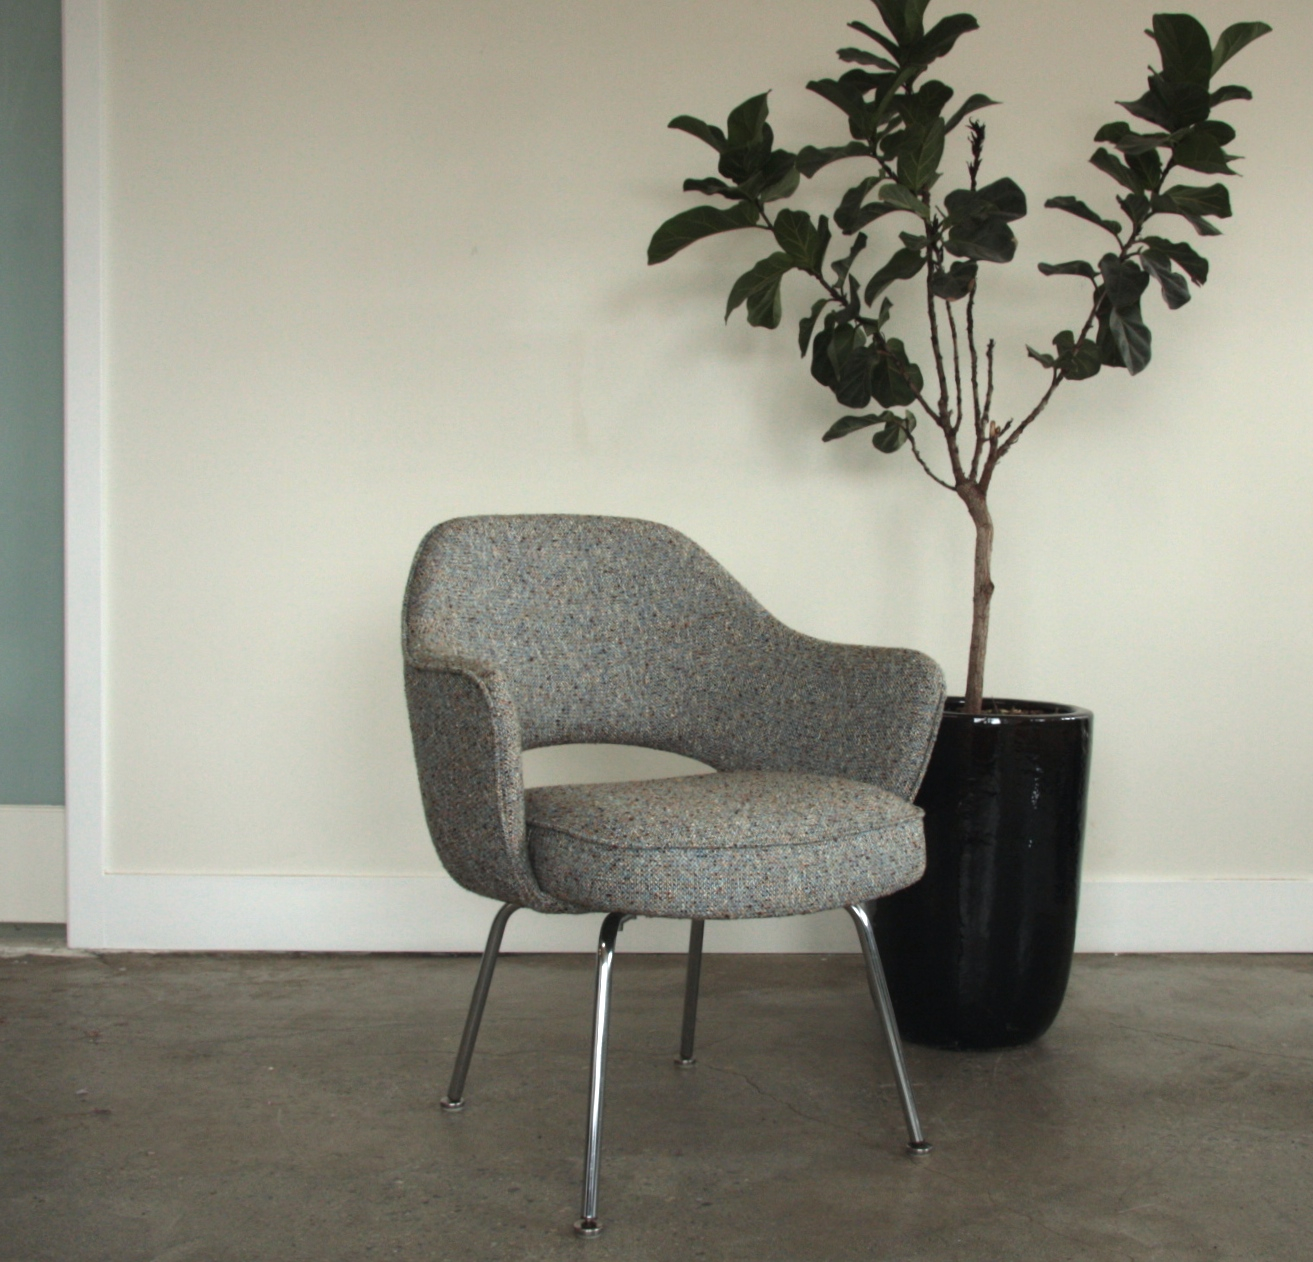 Mid Century Modern chair, upholstered in grey wool and piping trim.